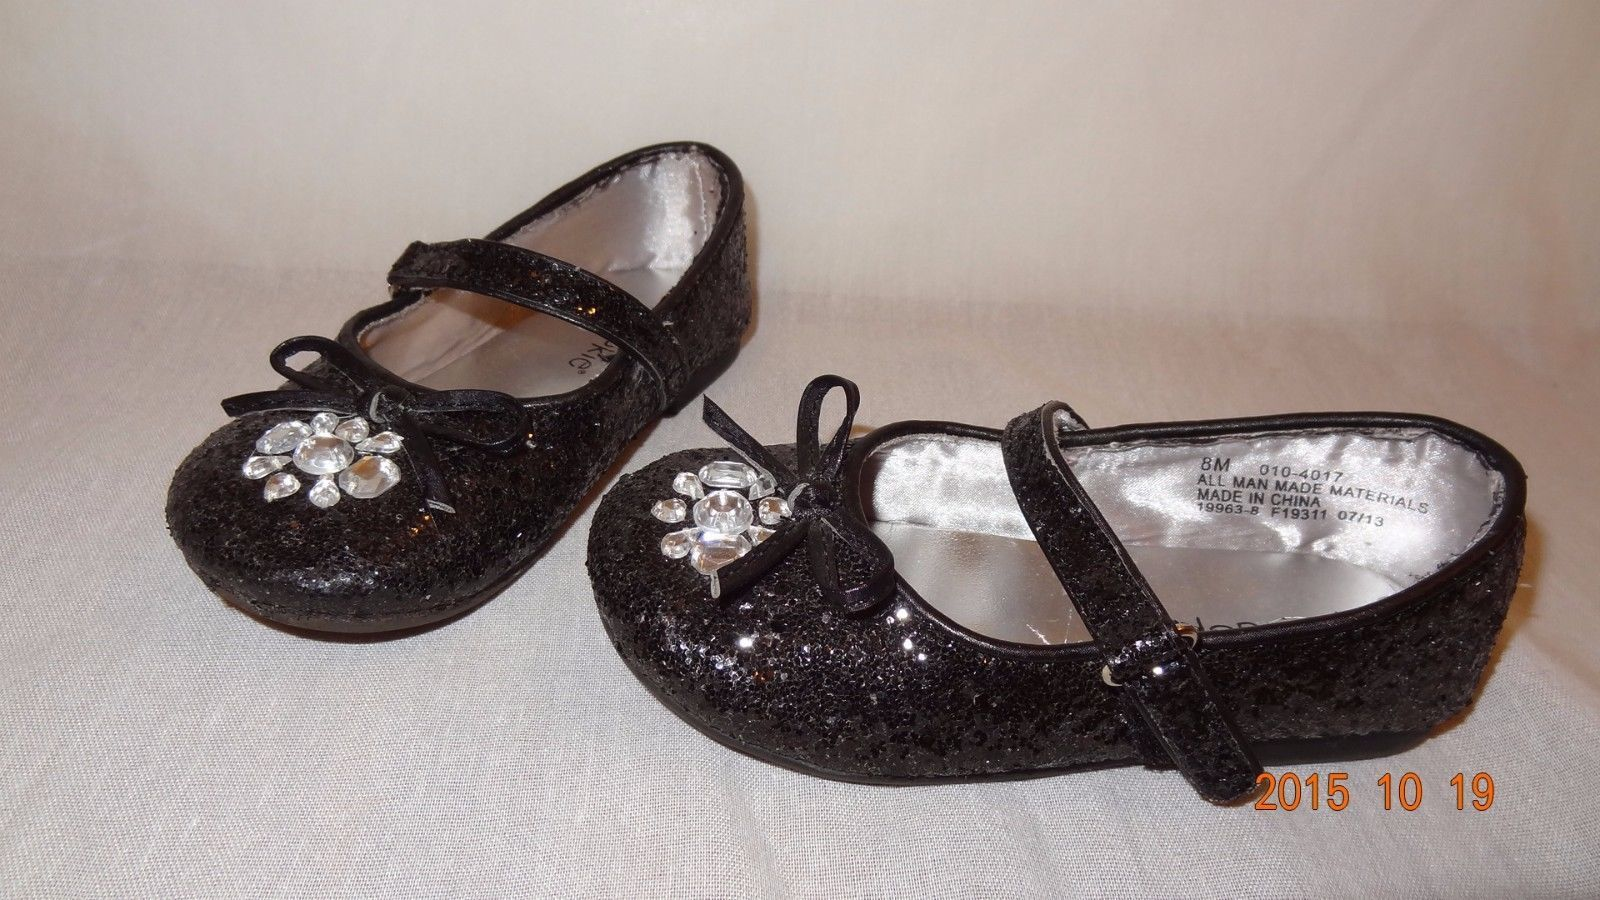 Black Dress Shoes Rhinestone Sparkly Size Toddler 8M Okie Dokie 2013 Mary Janes